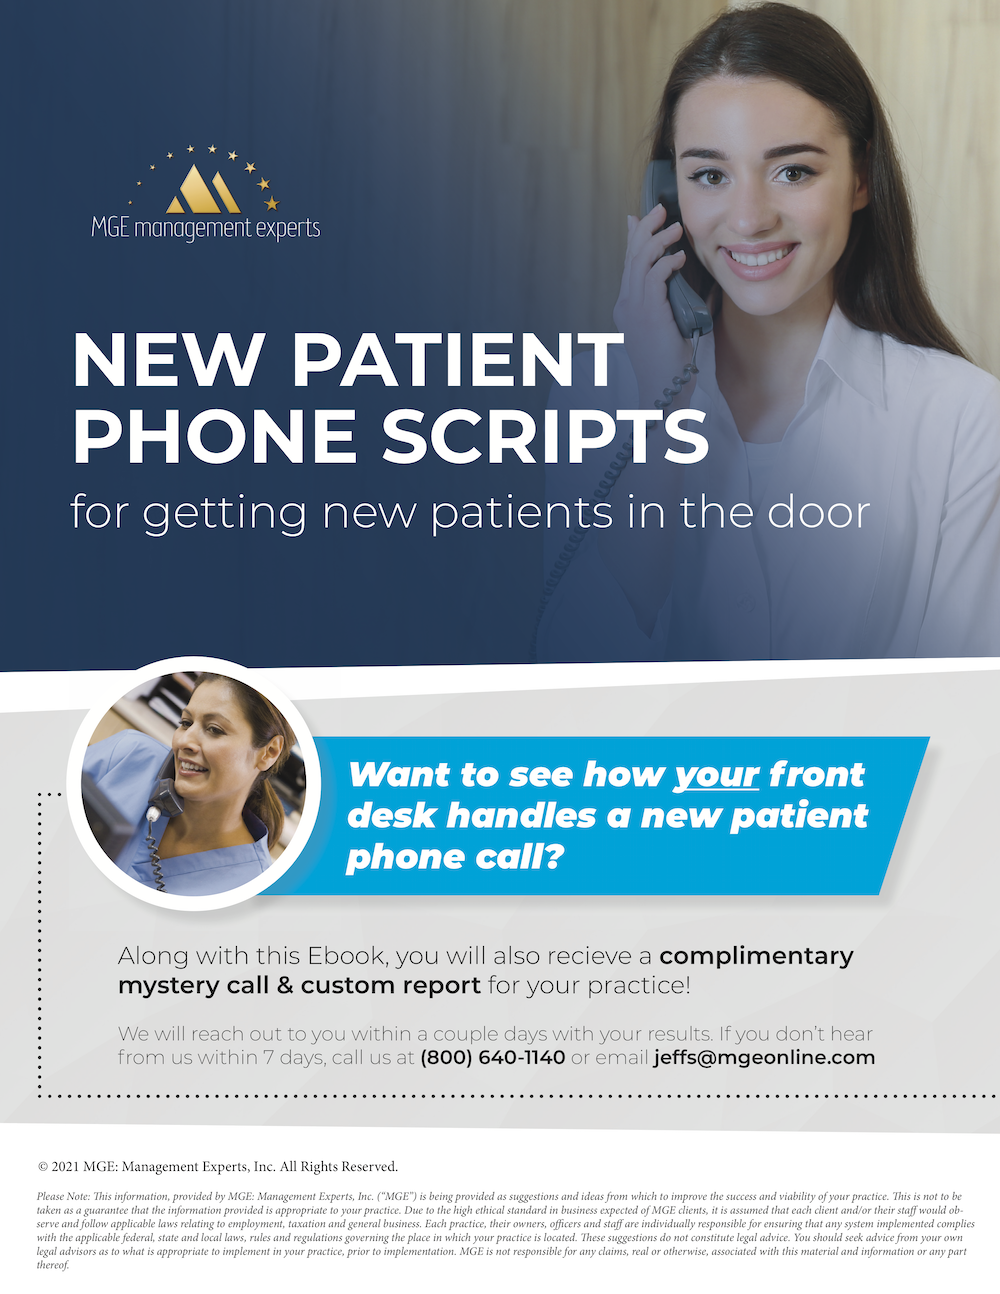 MGE_New_Patient_Phone_Scripts_Ebook[2]